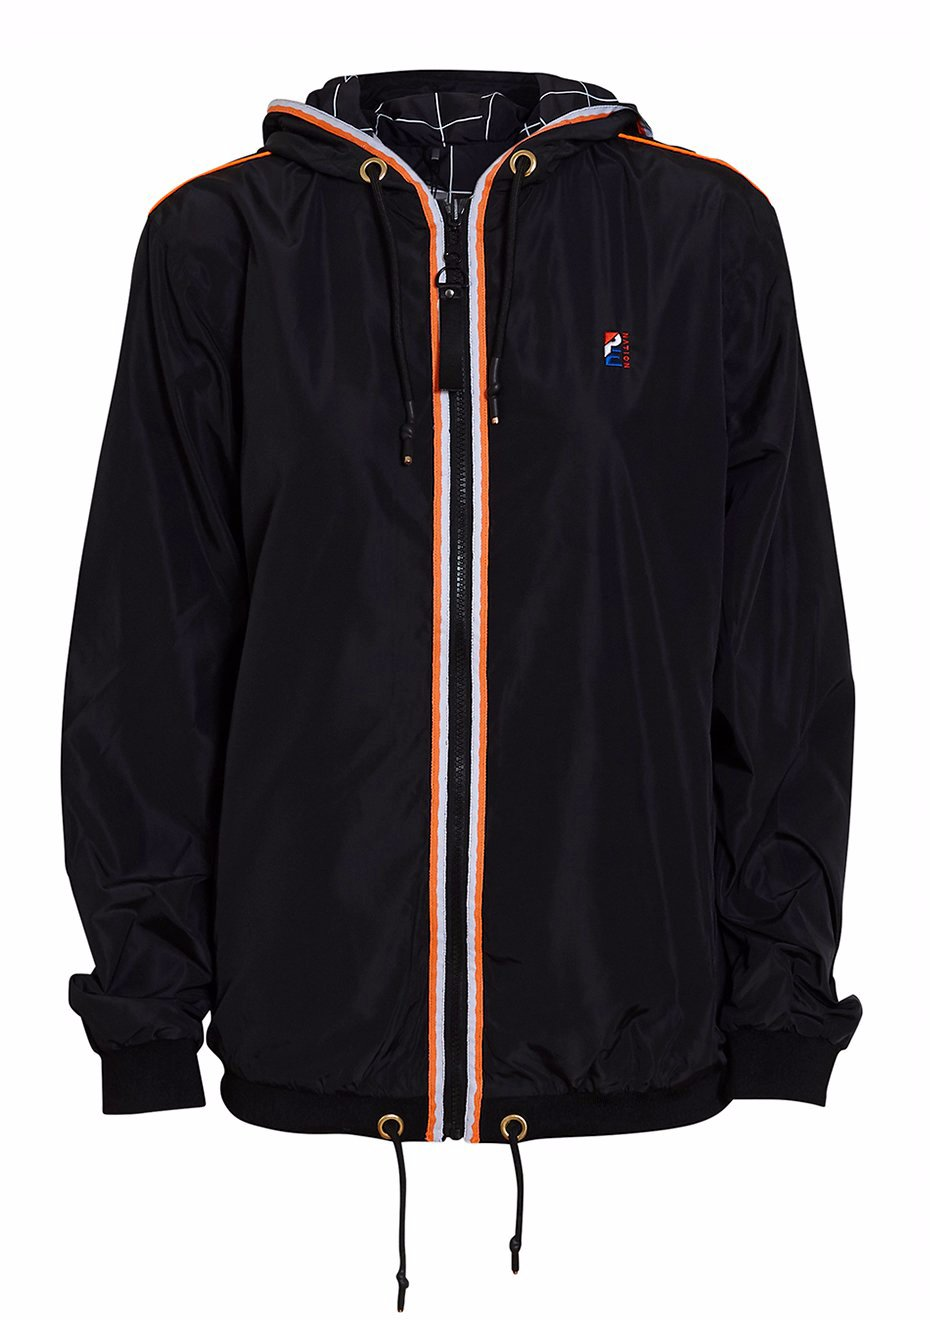 The Nordic Reversible Jacket